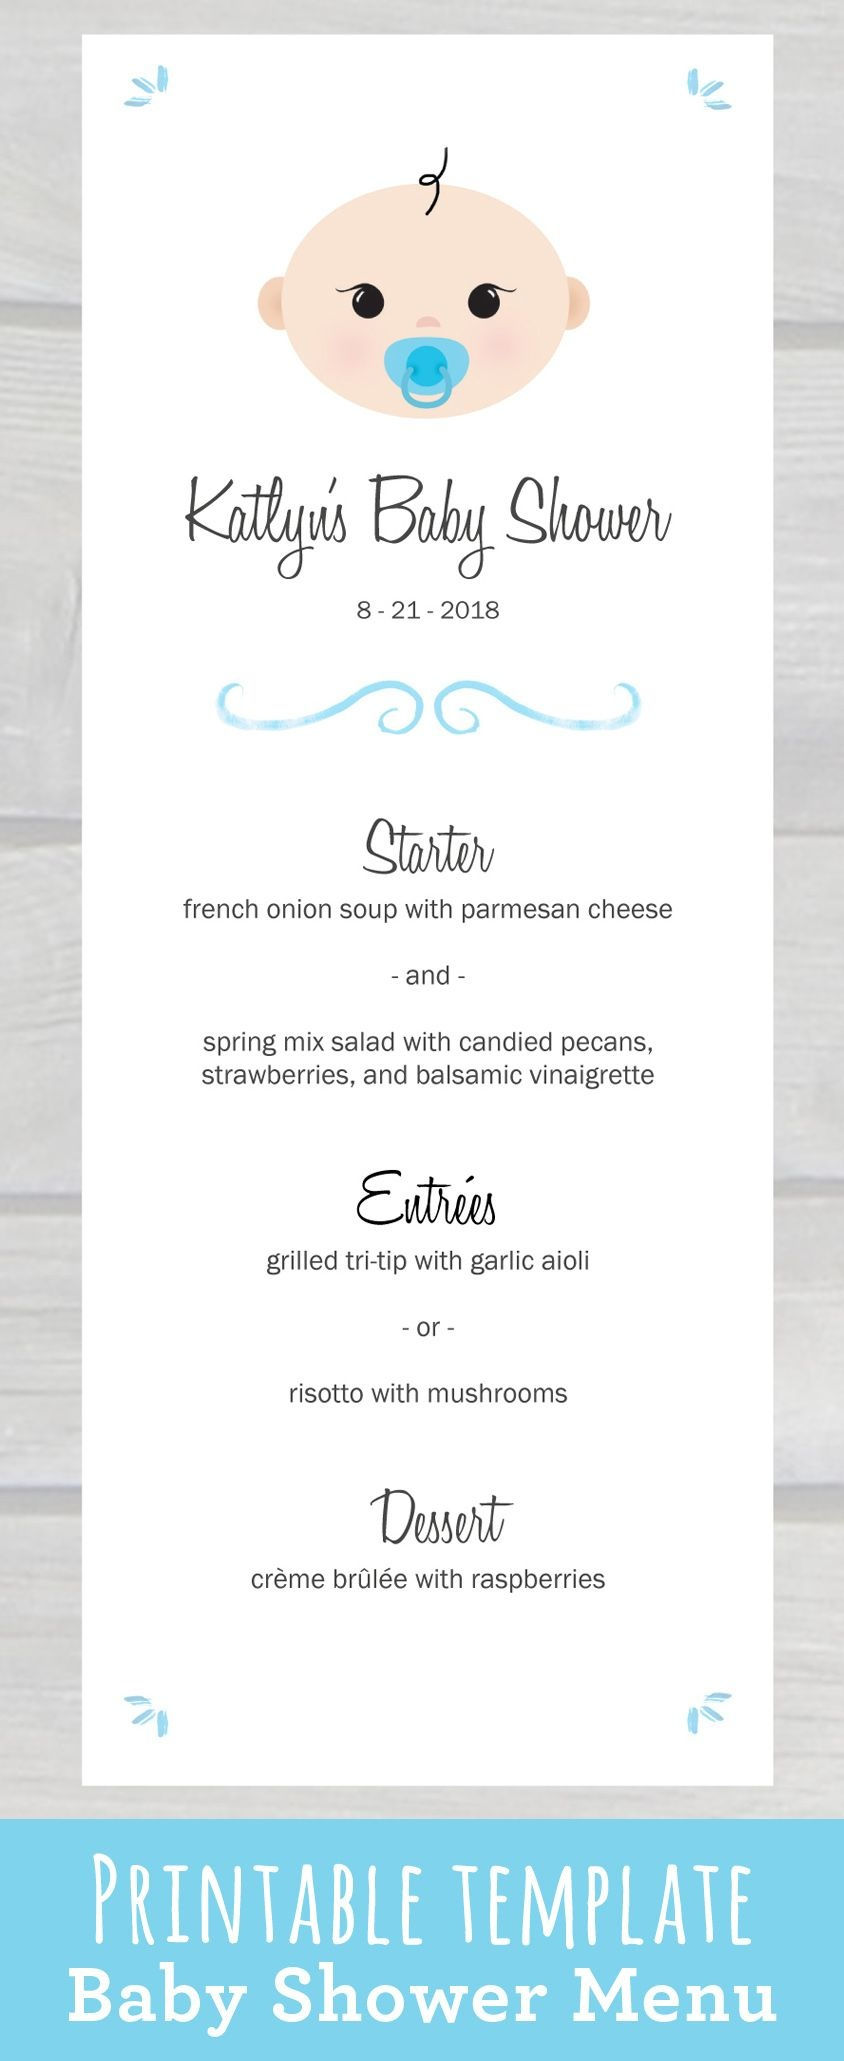 Use This Cute Baby Shower Menu Template Pdf To Edit & Print Your Own - Free Printable Drink Menu Template